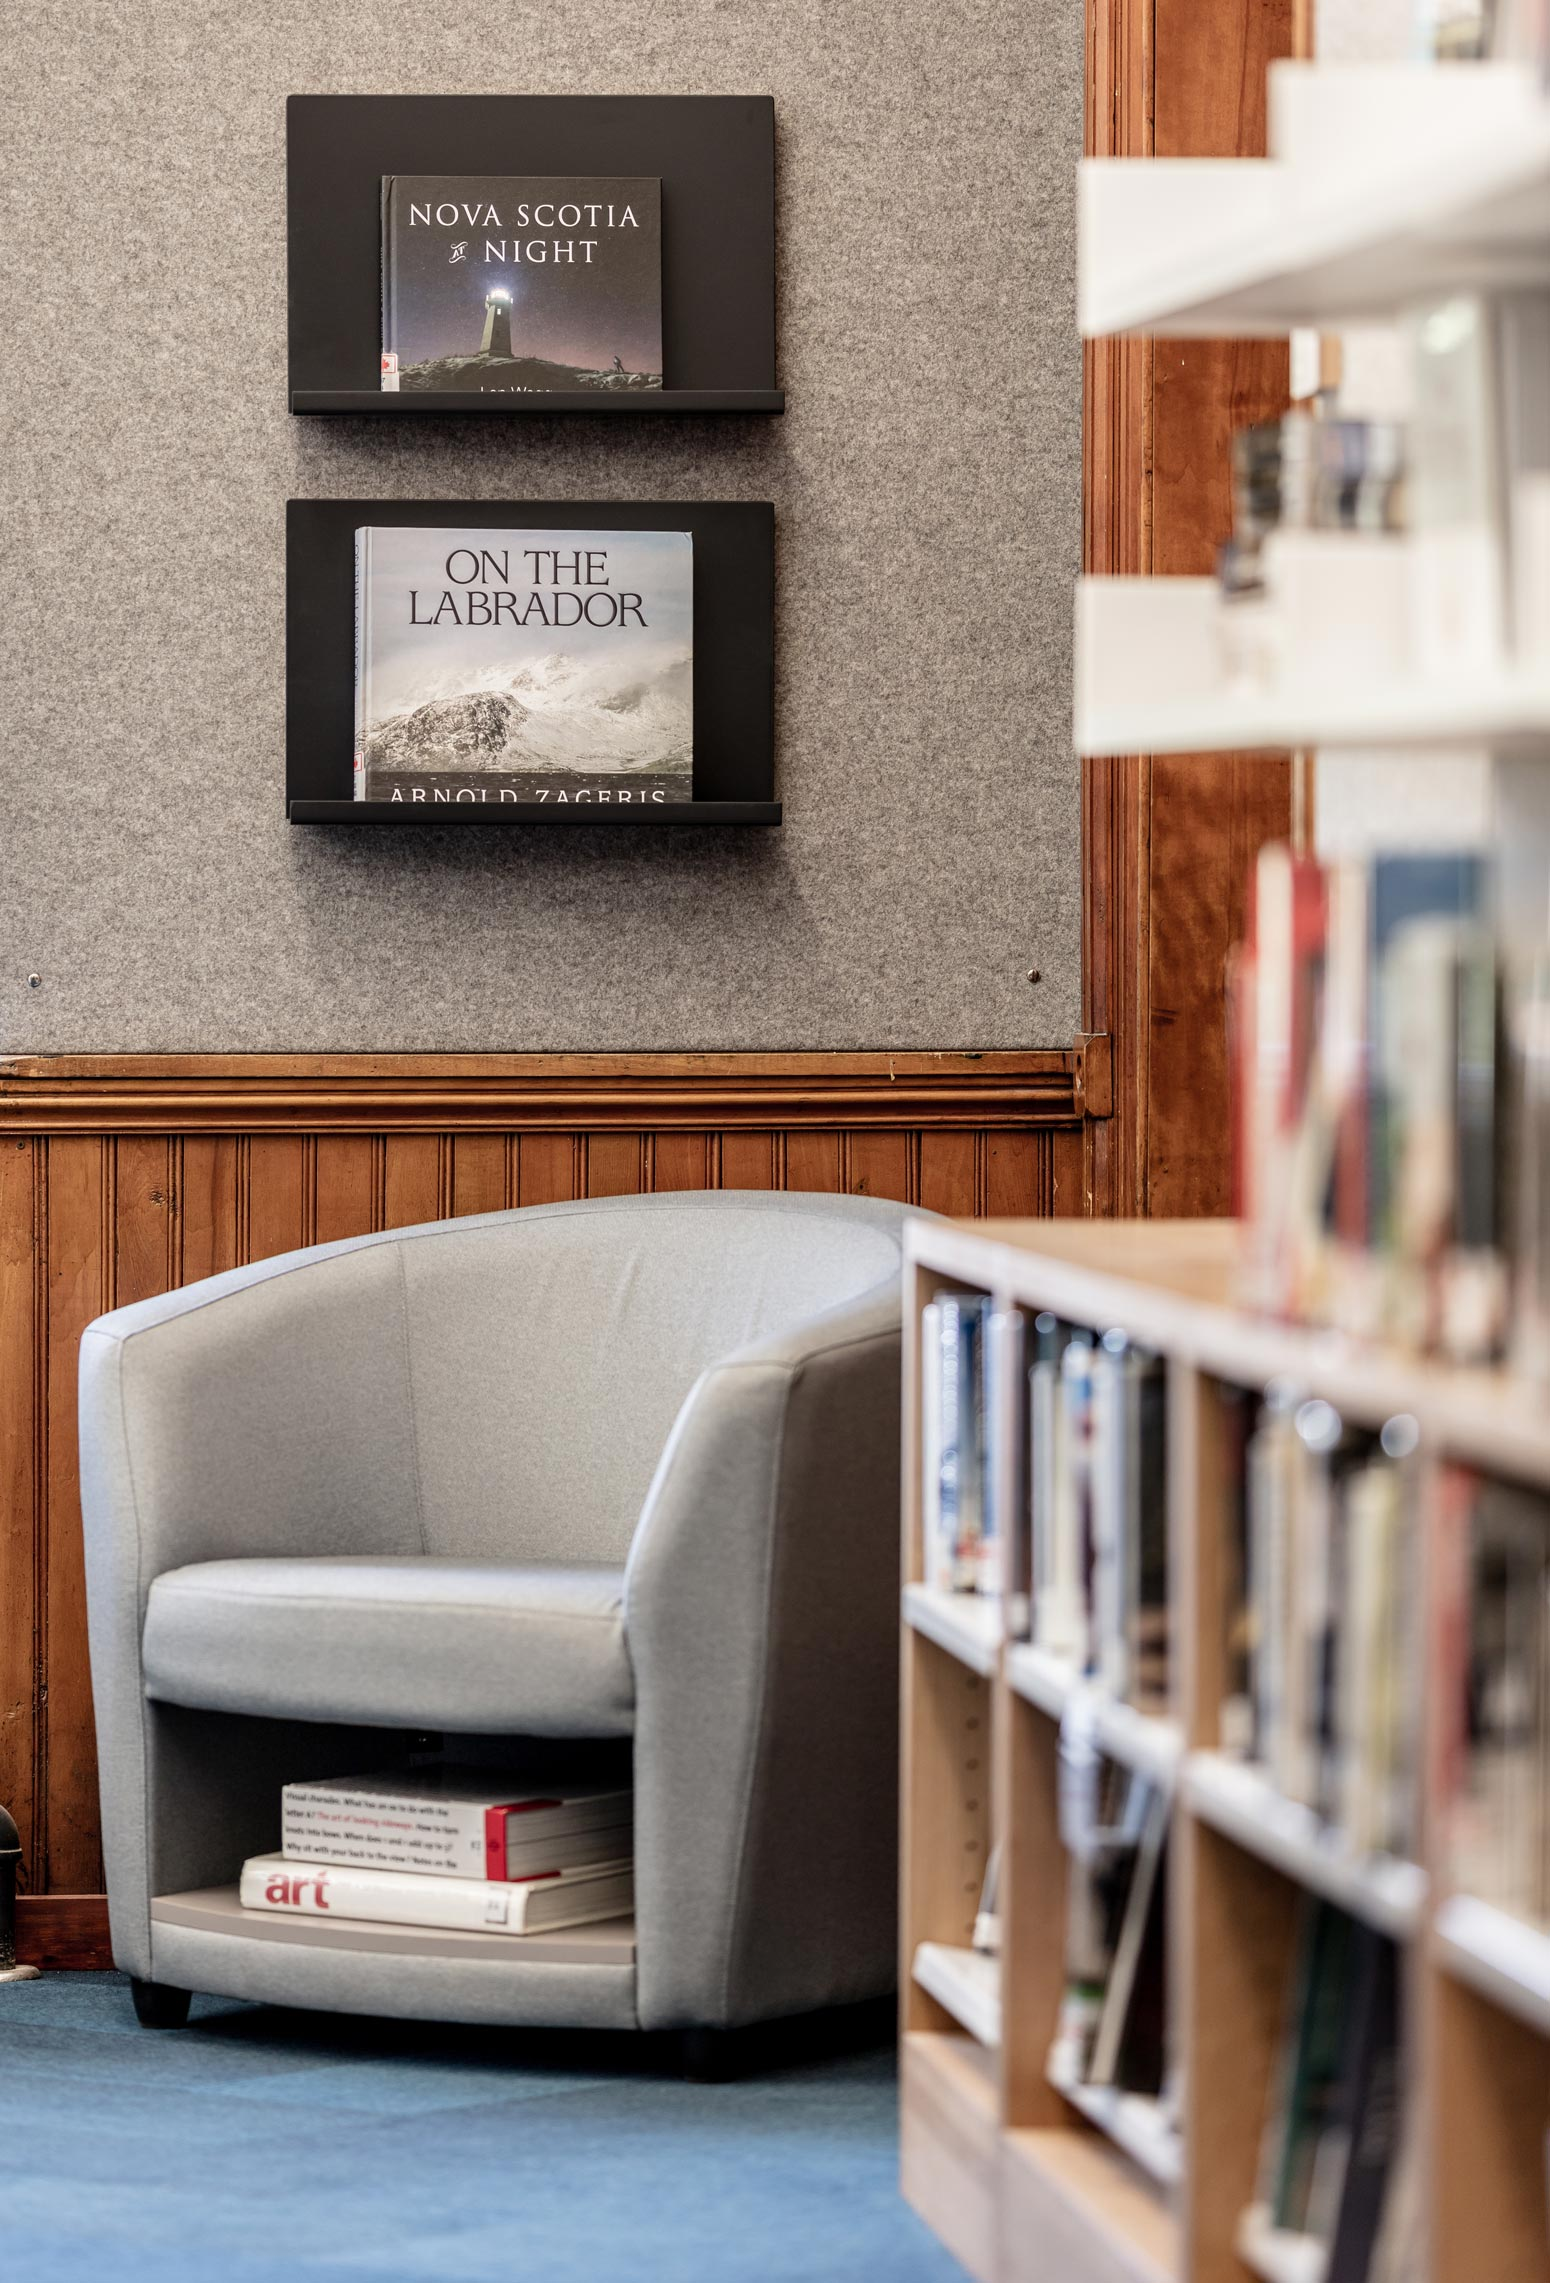 Adult---Lunenburg-Library---credit-Julian-Parkinson---28AUG2018_06A0650-web.jpg